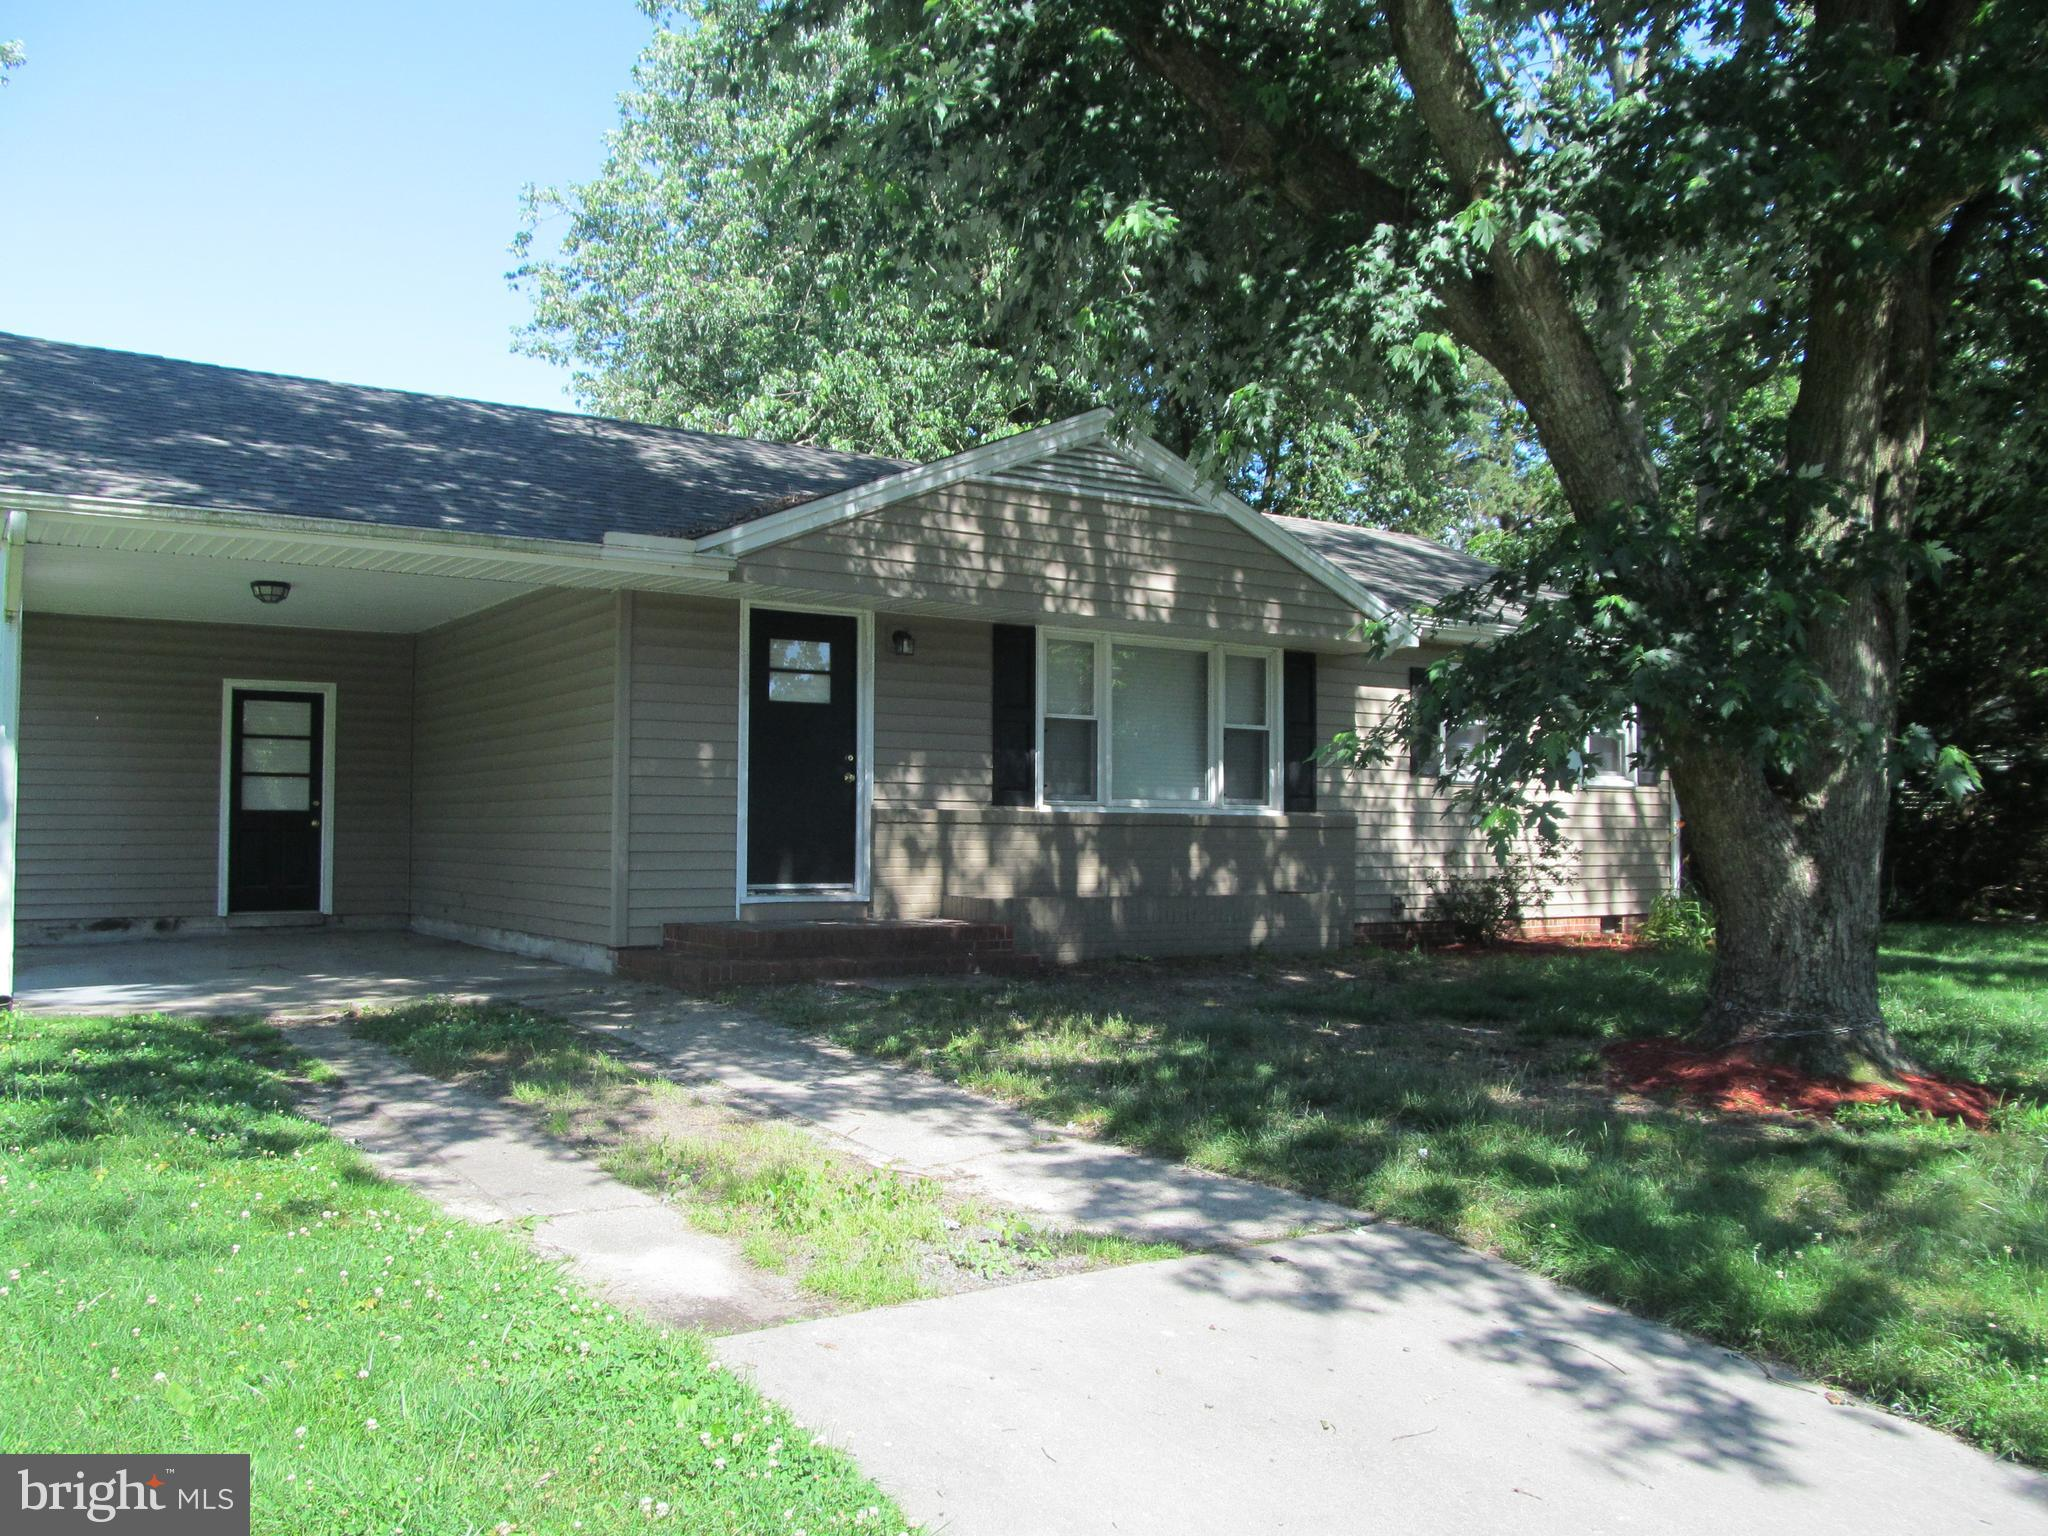 3 bedroom, 1 bath rancher, siding, heat pump, windows and appliances within 5years old. spacious bac